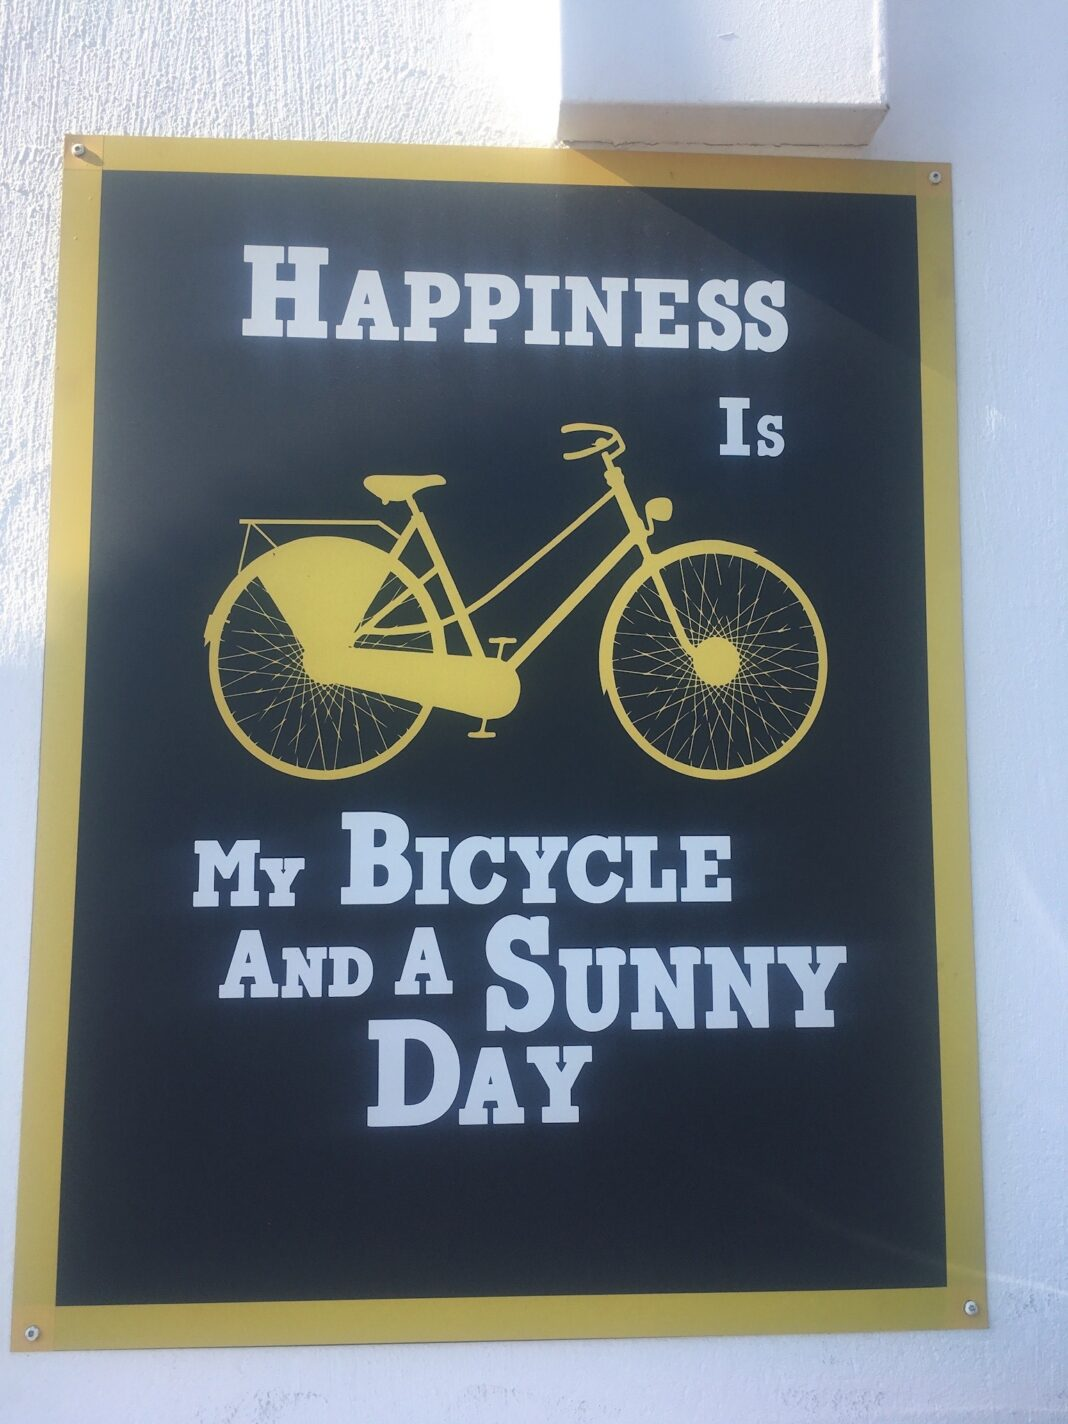 Happiness is my bicycle and a sunny day